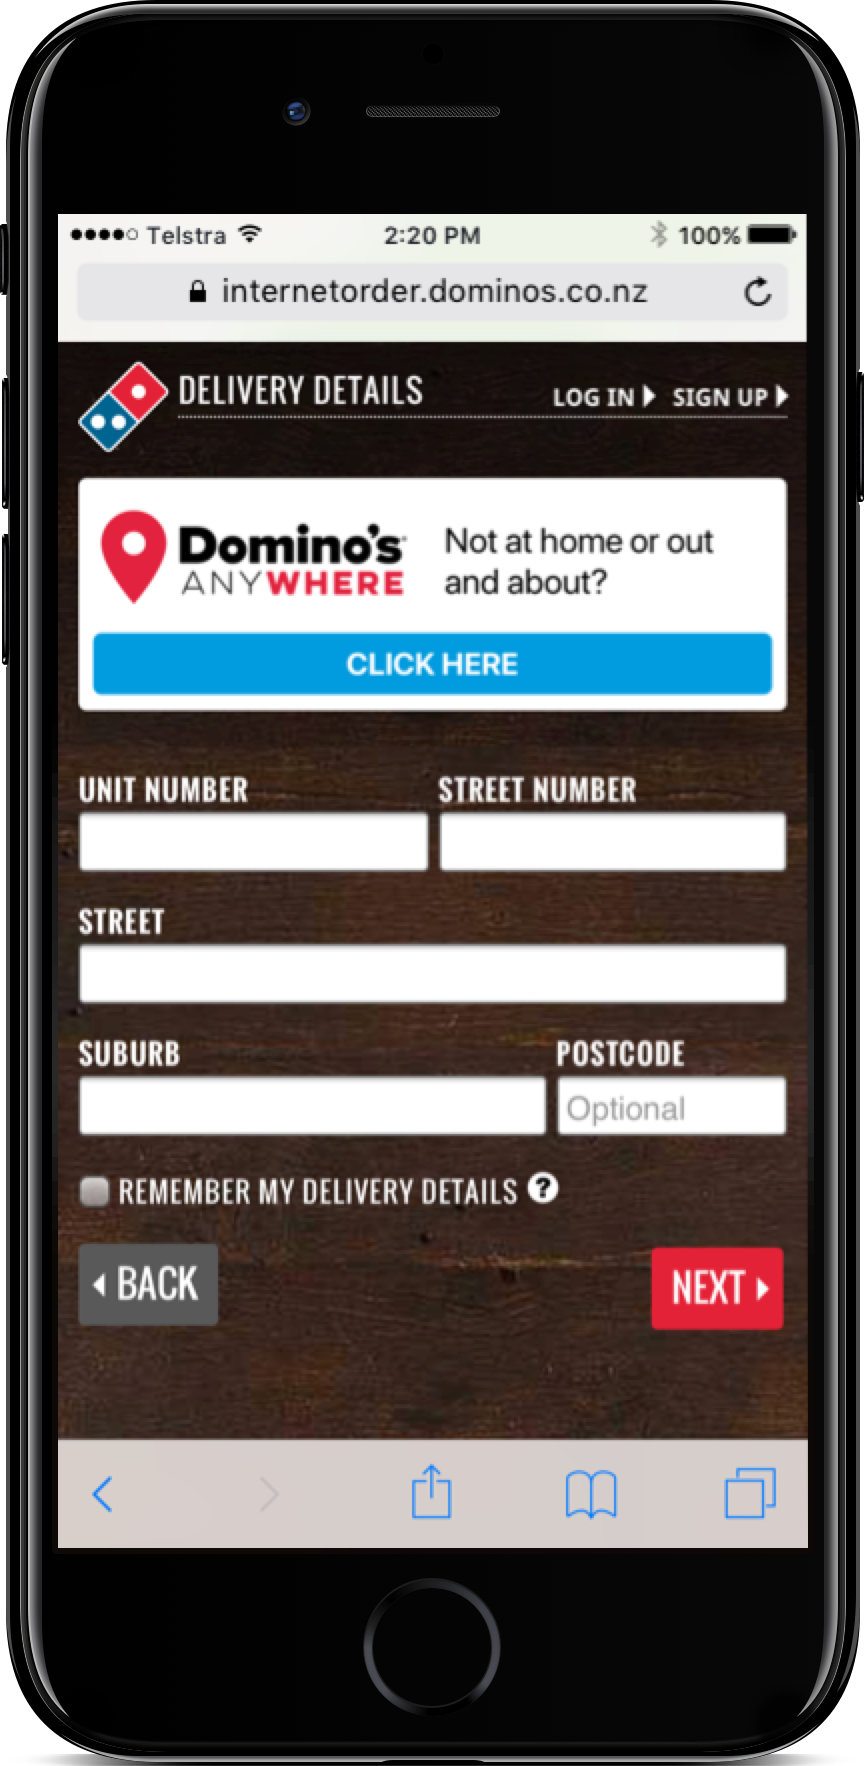 Select Domino's Anywhere on the Delivery Page -